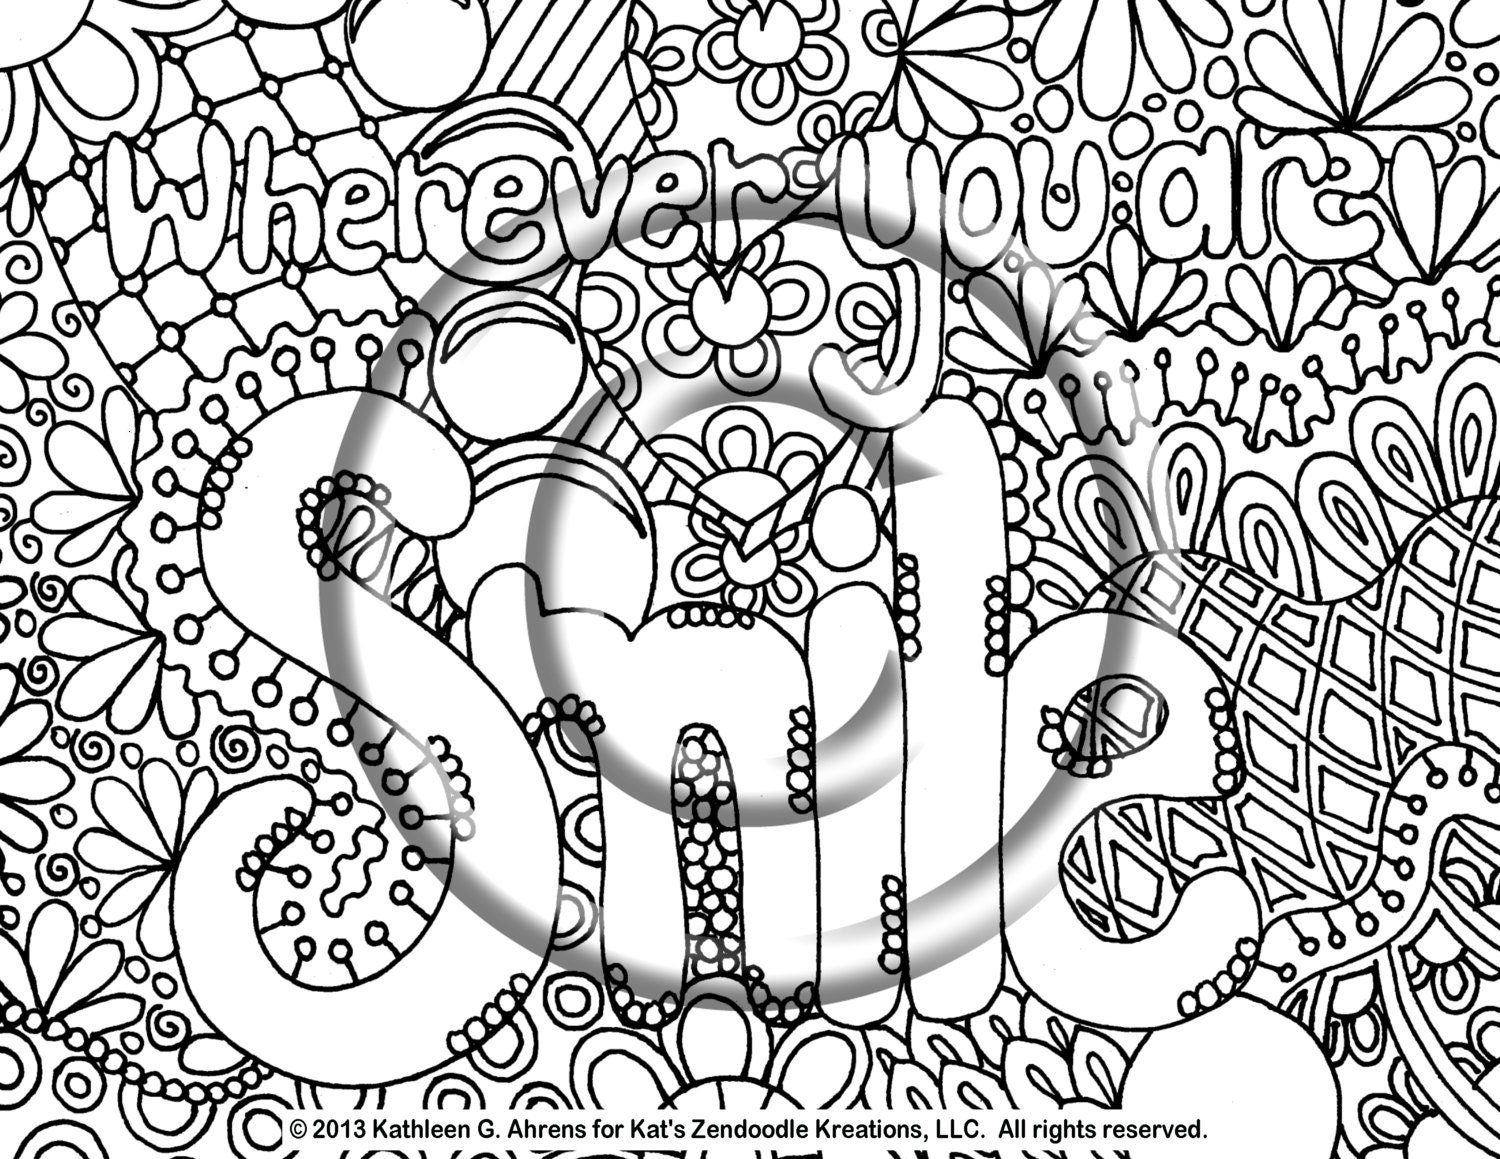 Free coloring pages for young adults - Coloring Pages Printable Printable Coloring Pages Young Adults